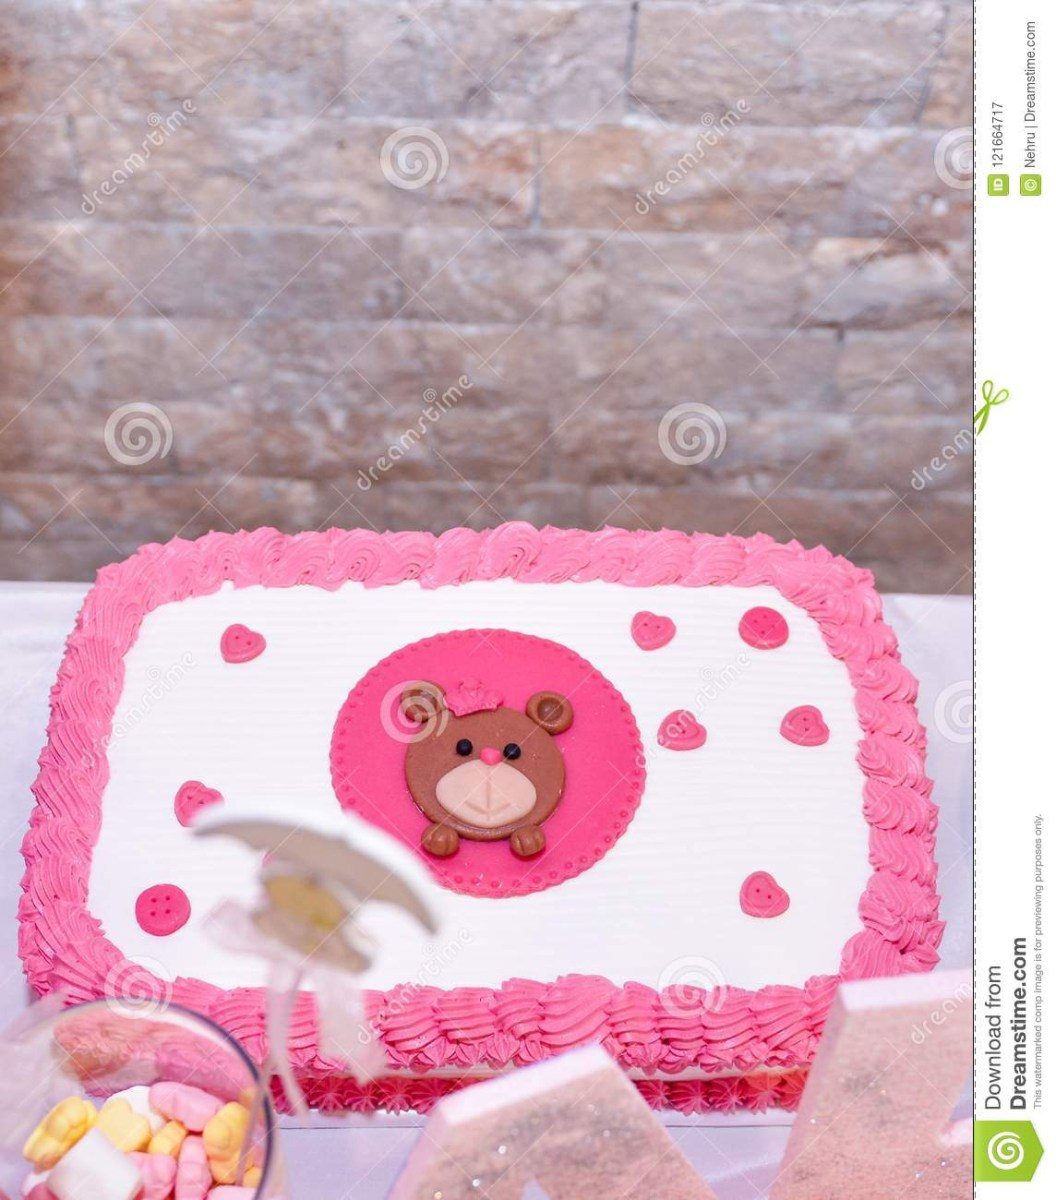 Phenomenal Baby First Birthday Cake Ba Girl First Birthday Cake With Teddy Funny Birthday Cards Online Elaedamsfinfo